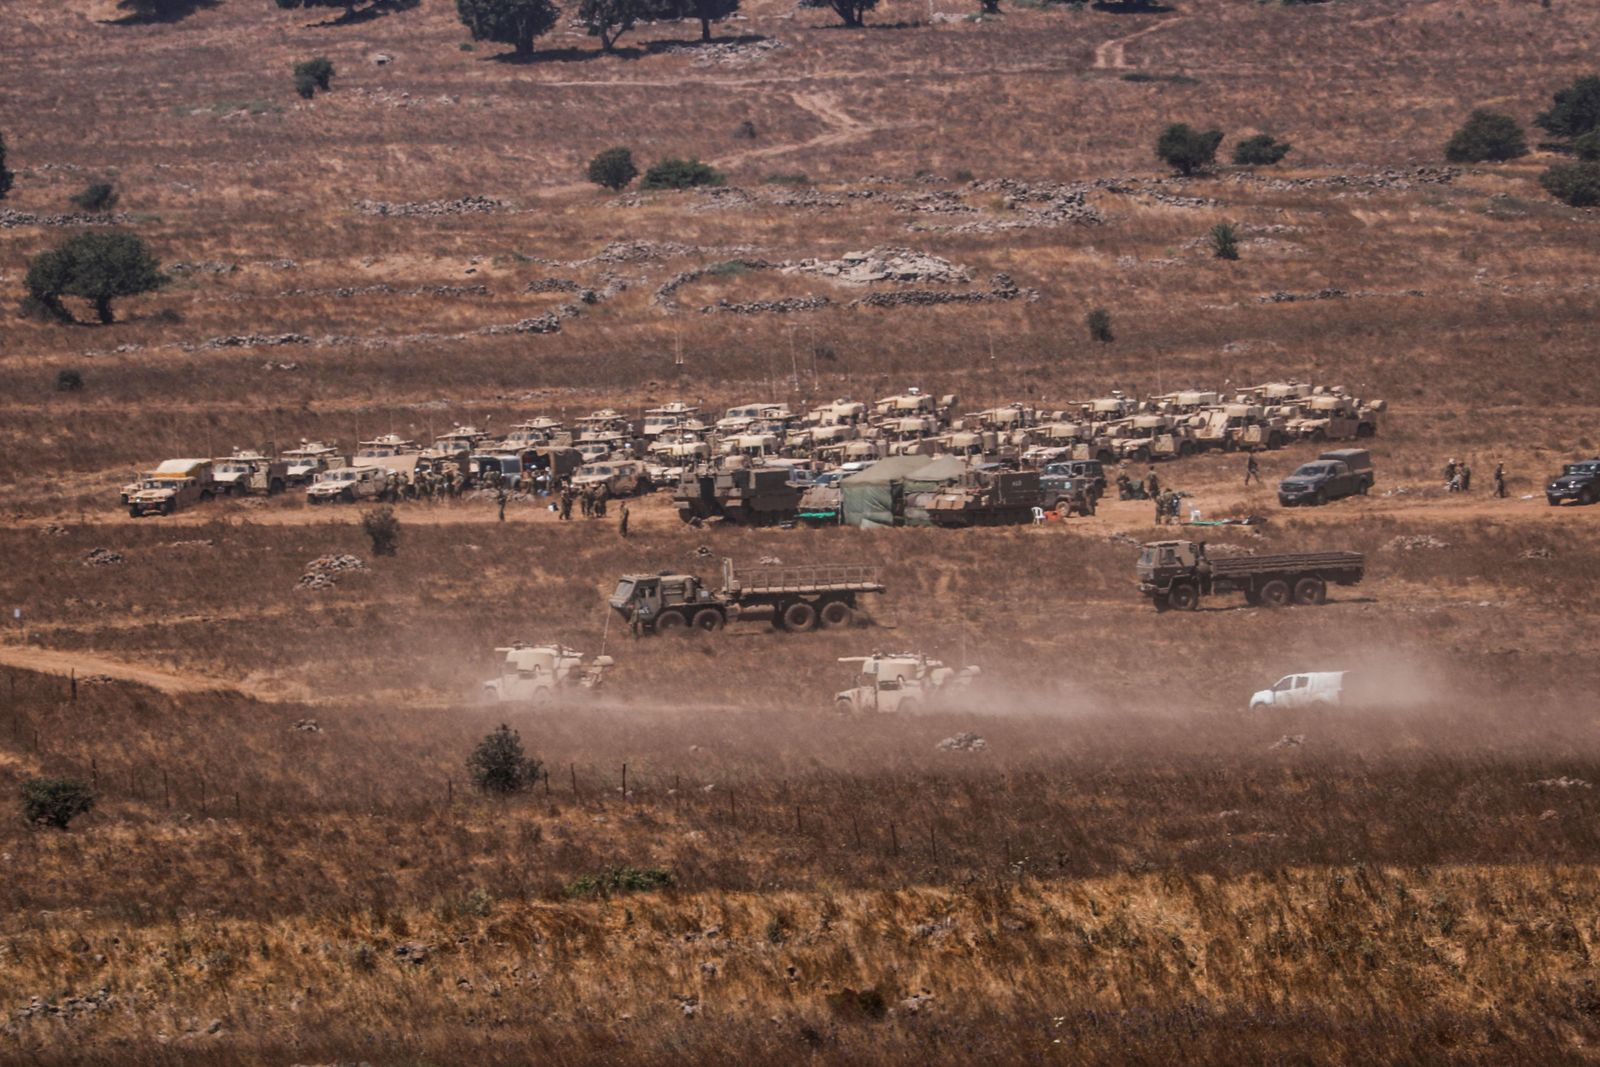 Tensions on Israel-Syrian border in the Golan Heights - 03 Aug 2020